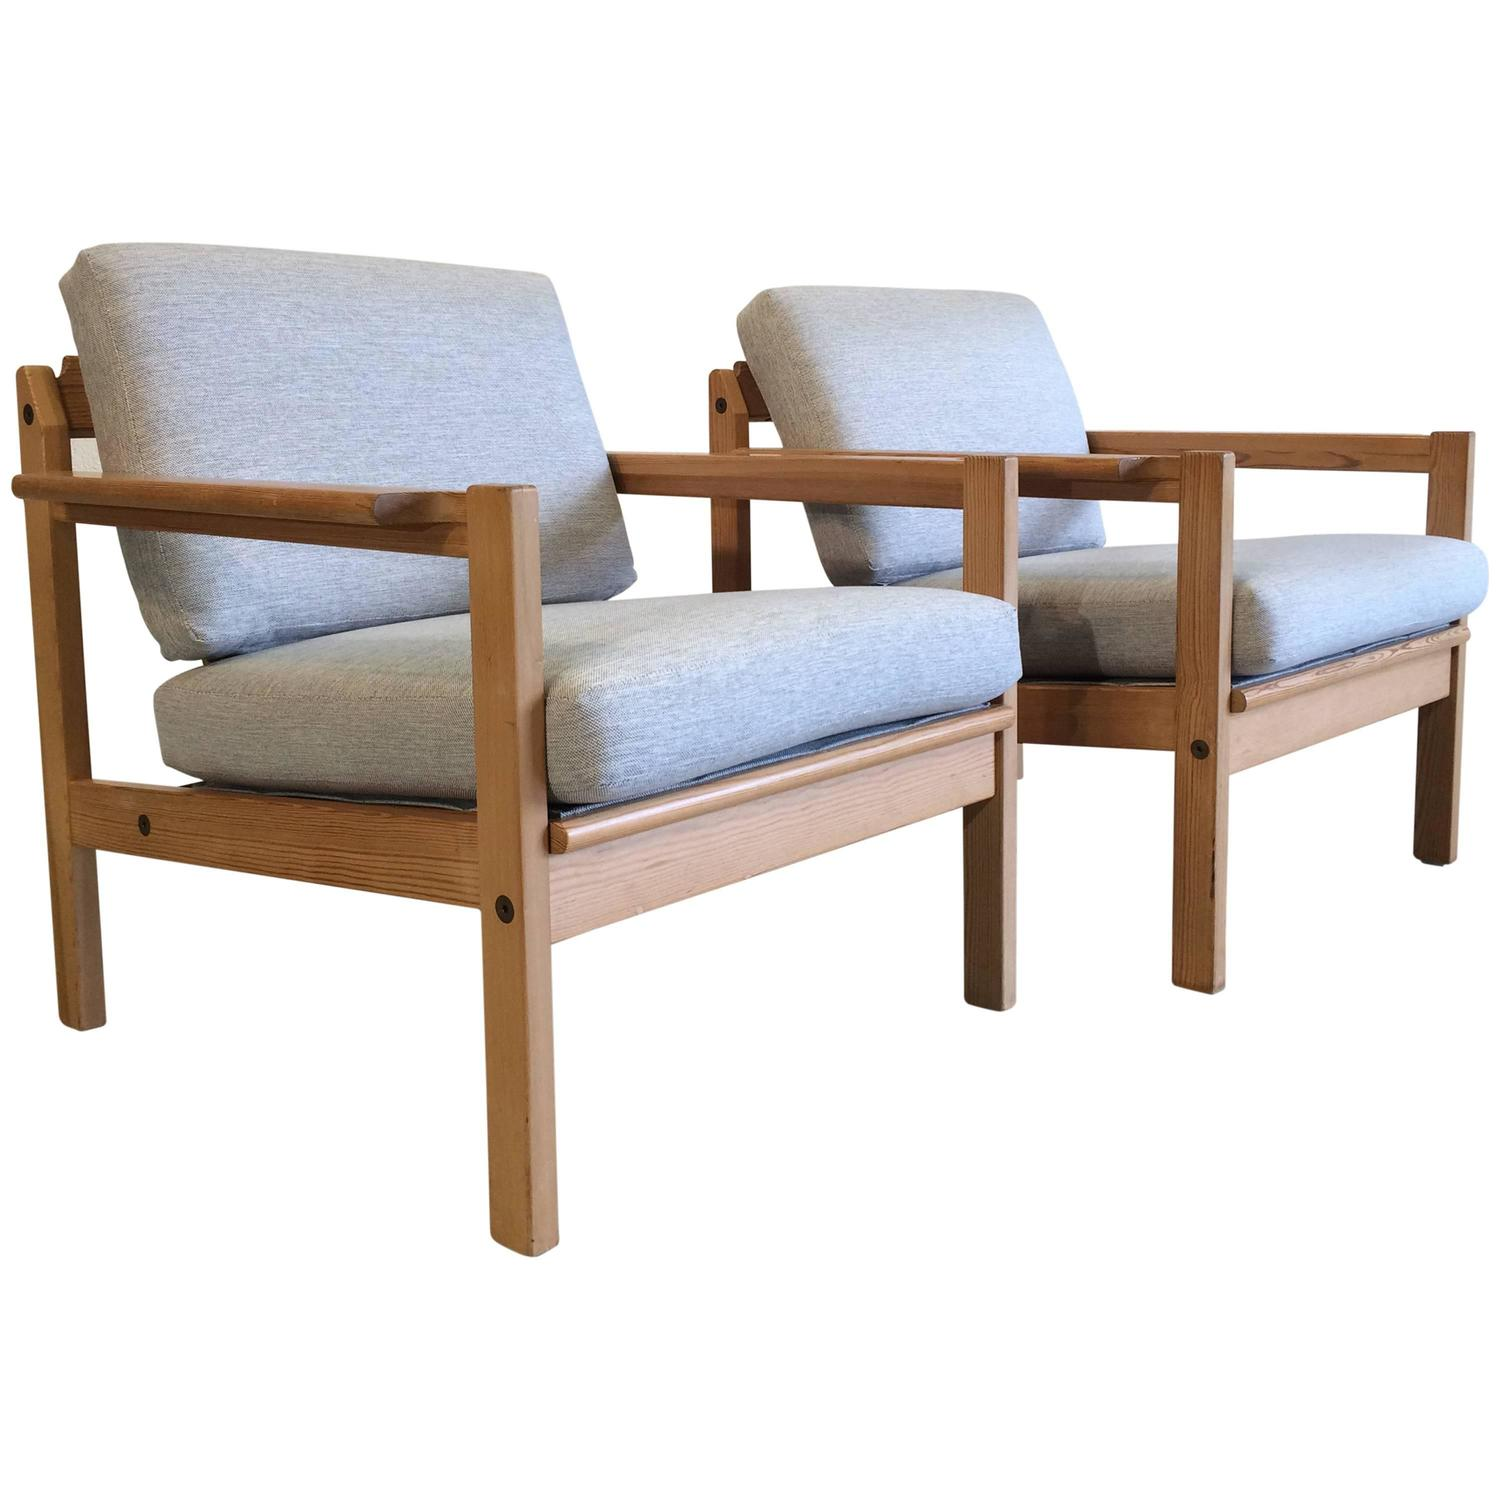 Two Pine Lounge Chairs Designed by Svein Bj¸rneng for Bruksbo For